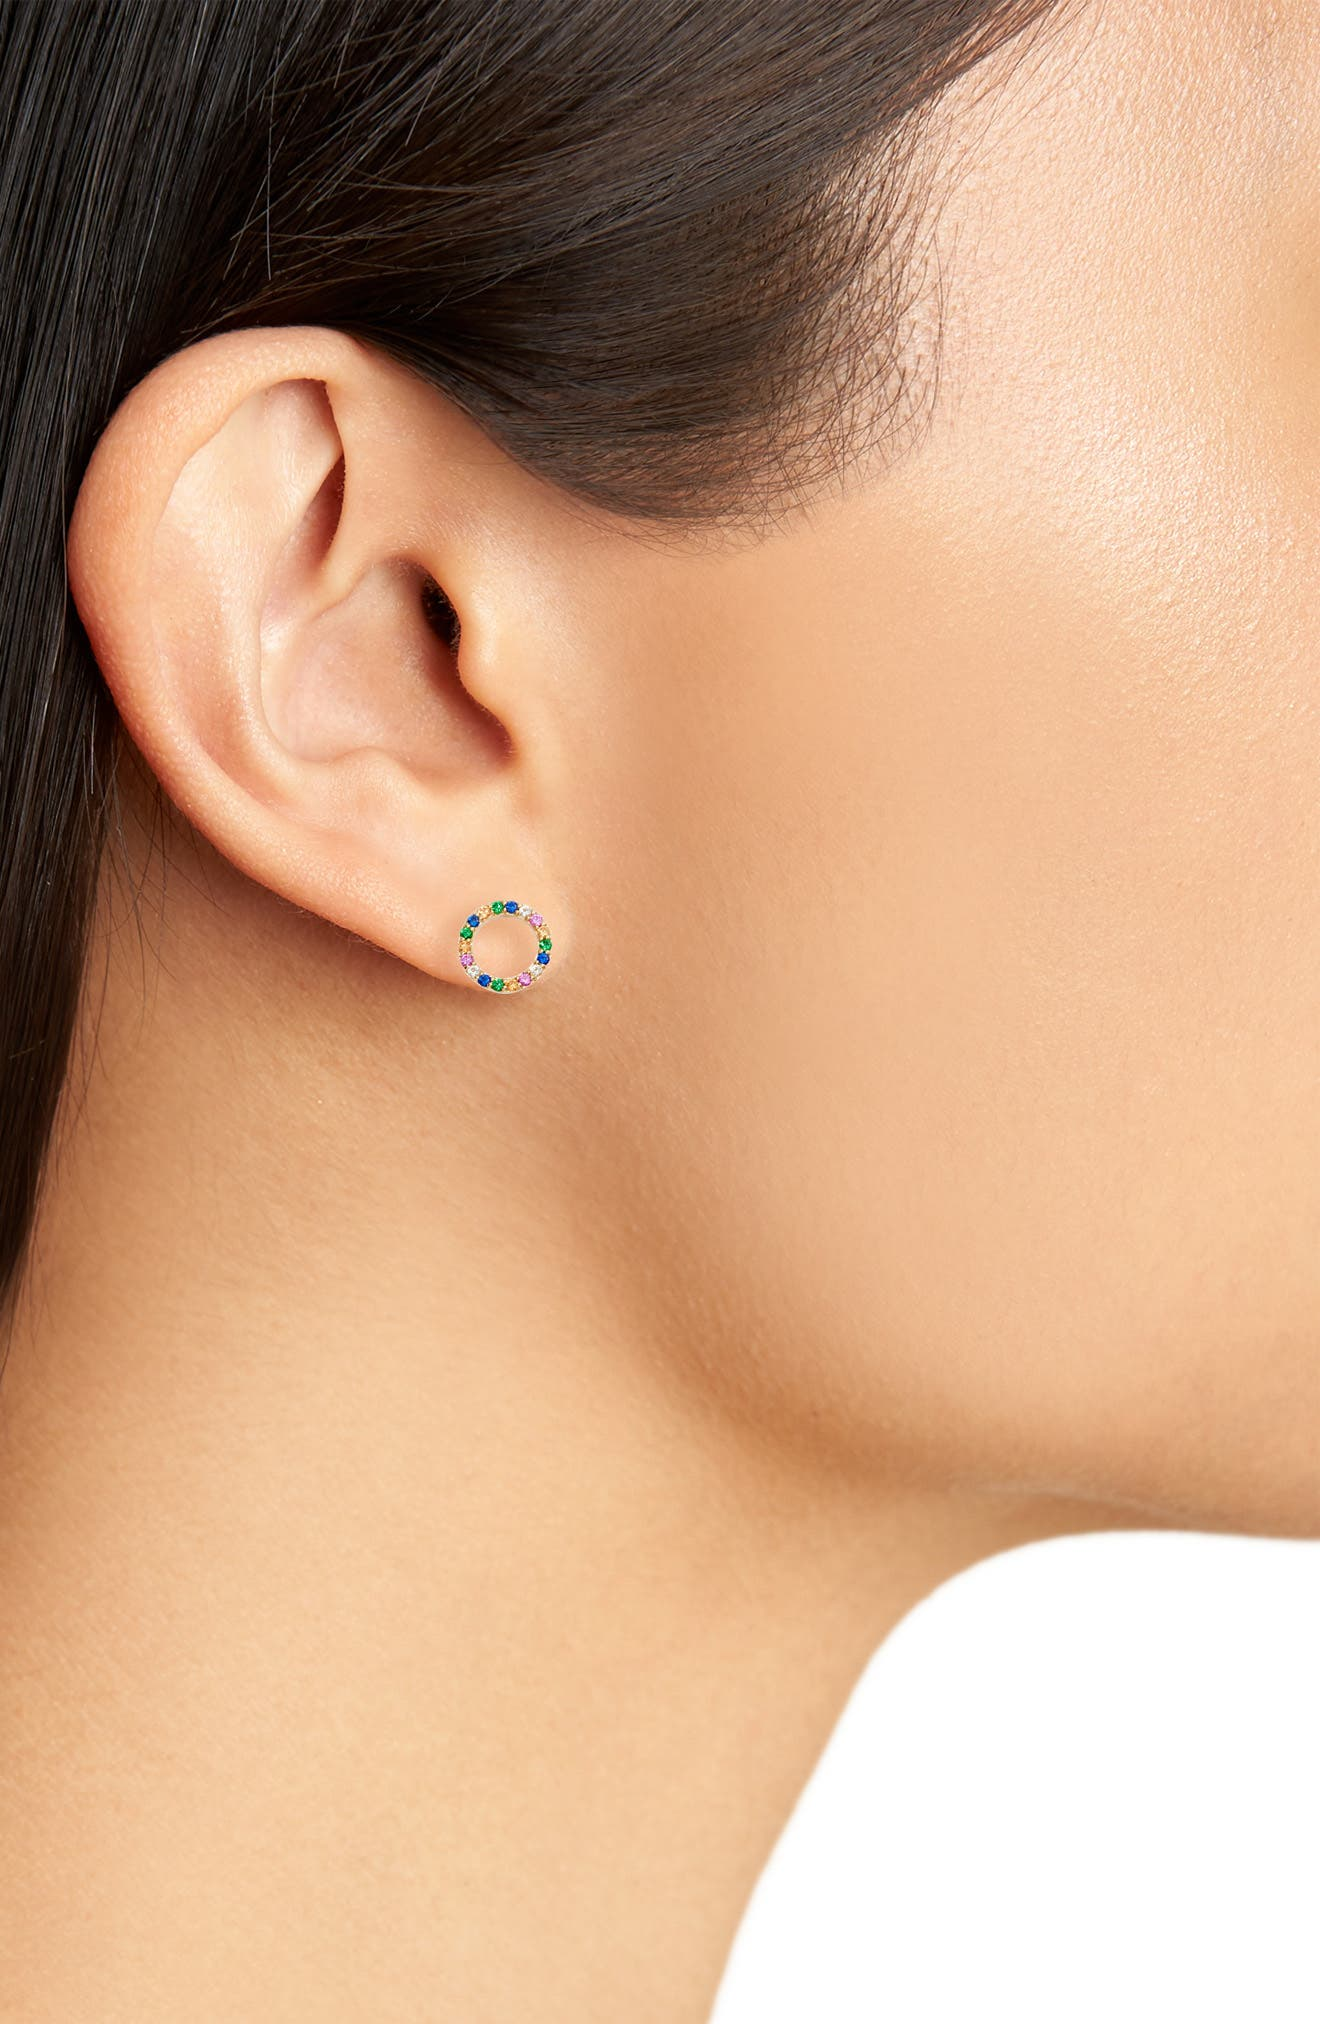 Mini Circle Sapphire Stud Earrings,                             Alternate thumbnail 2, color,                             700